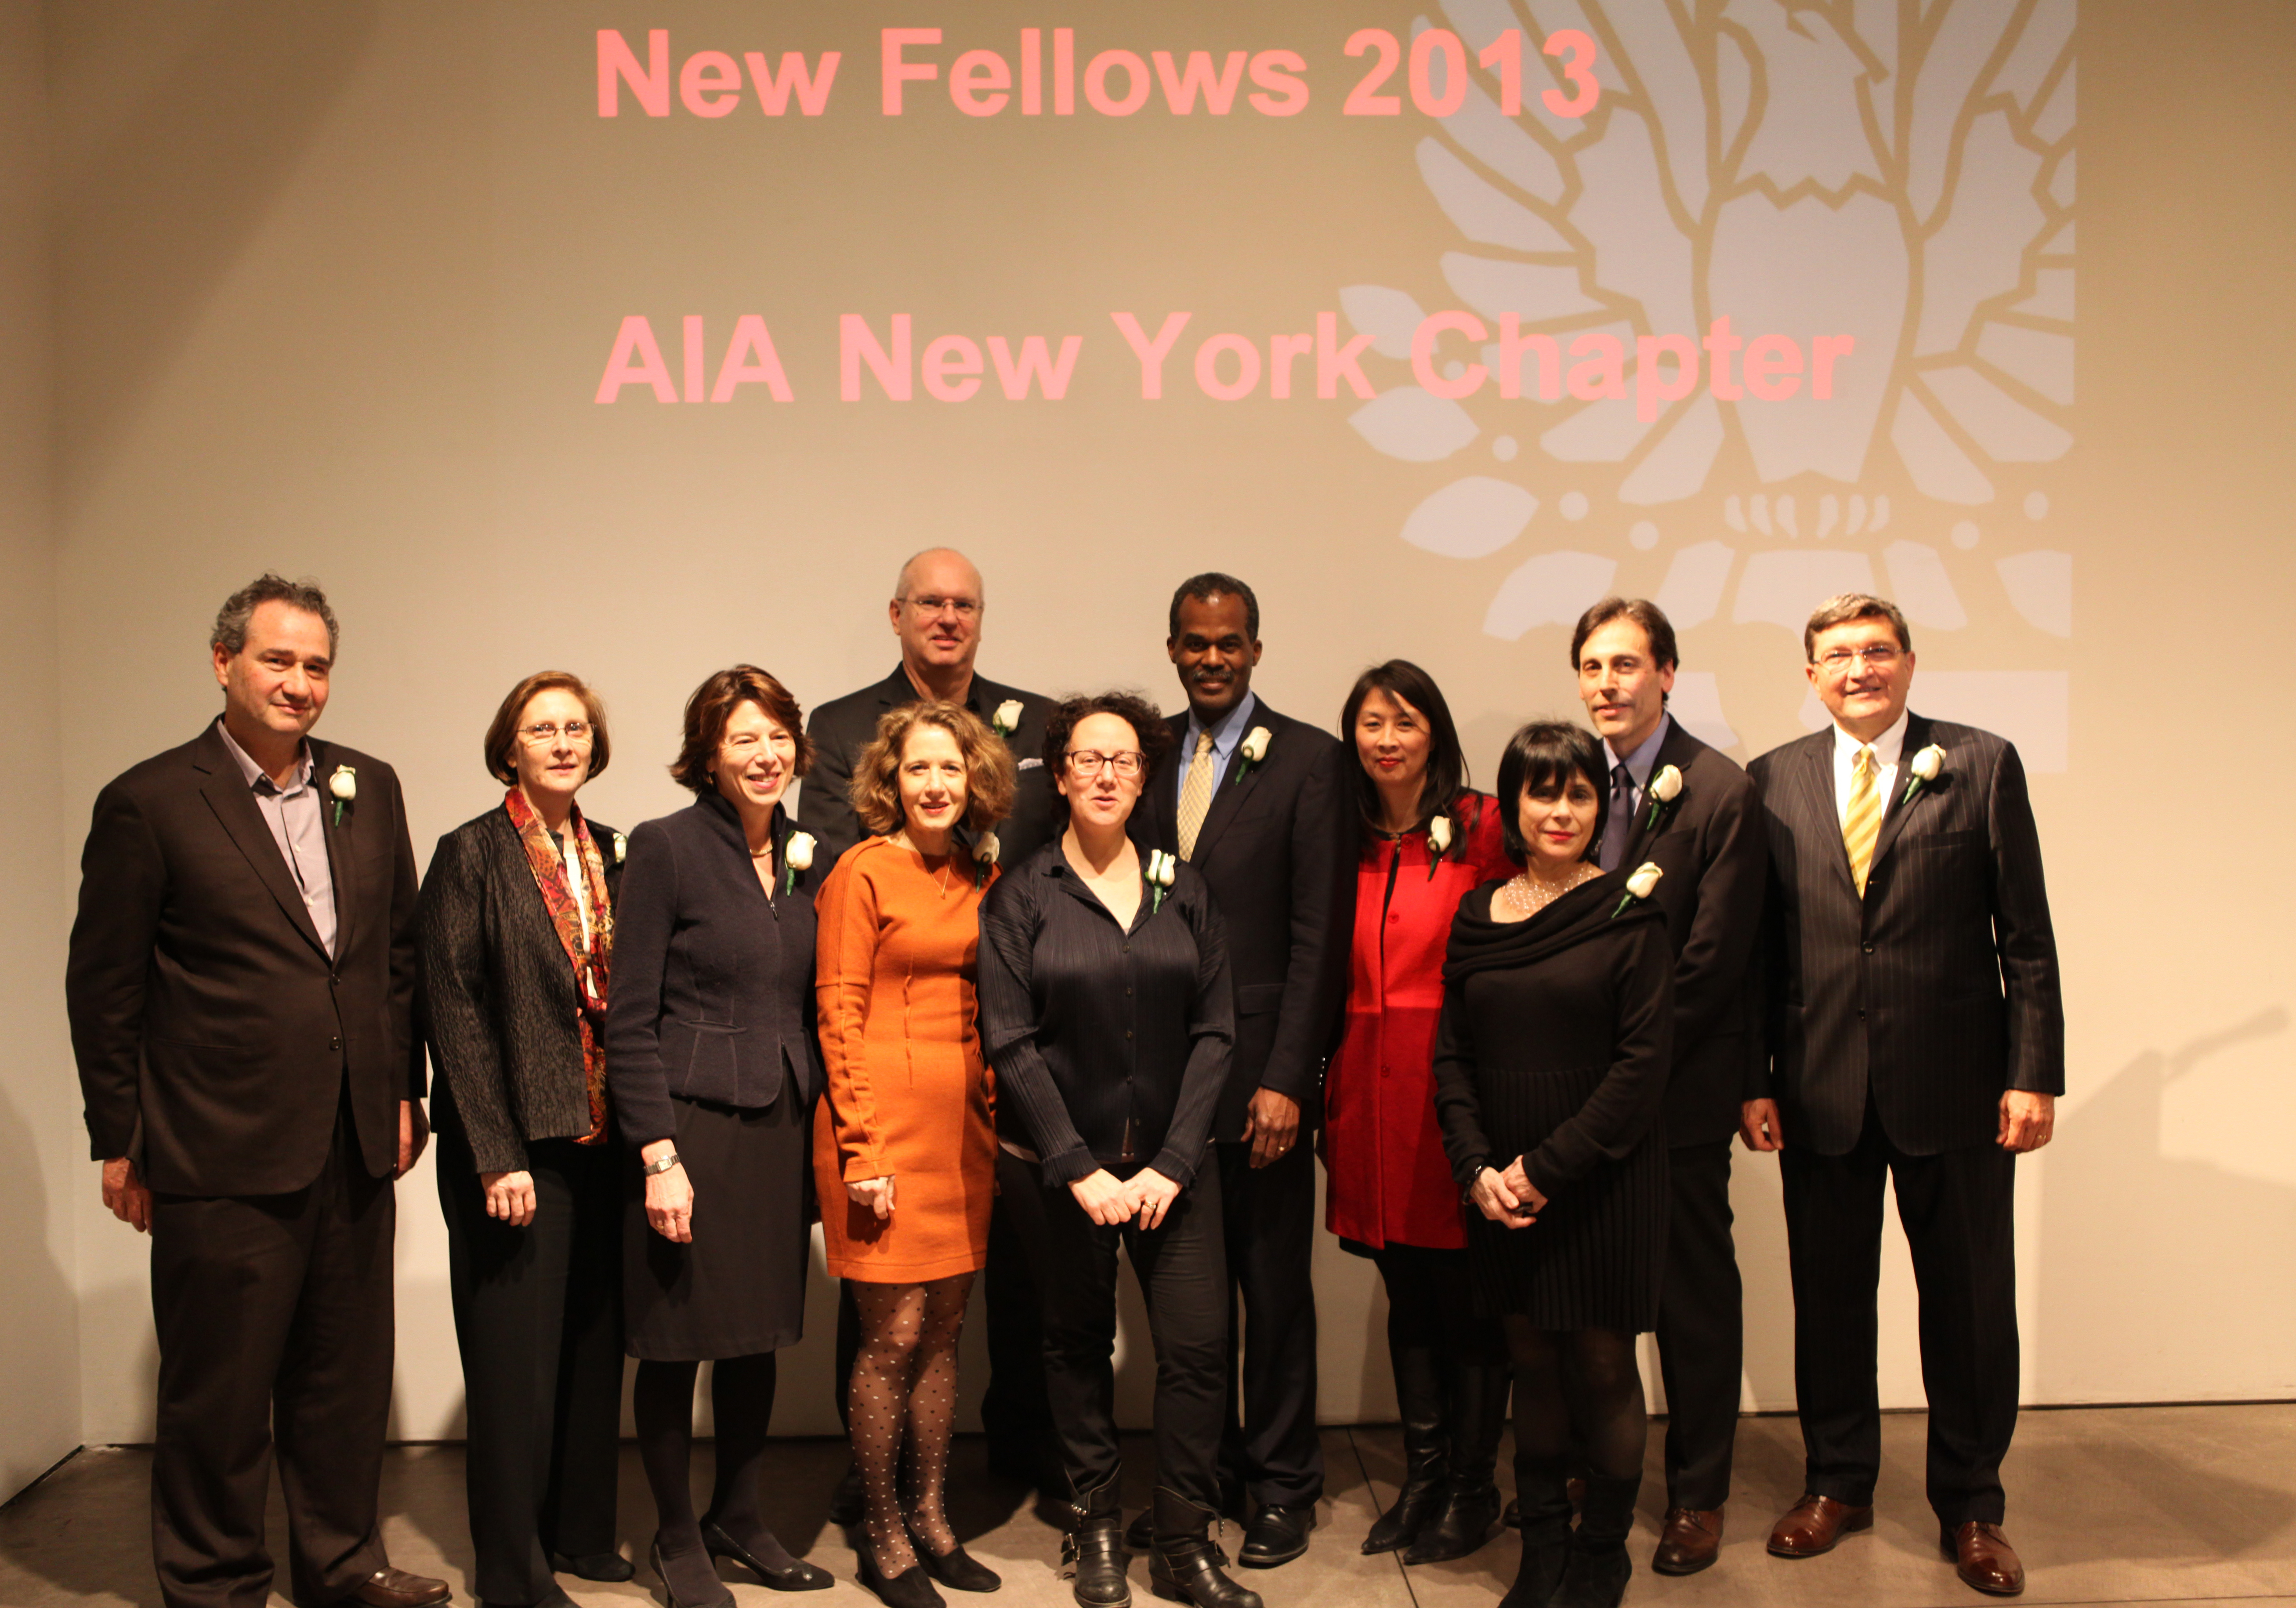 Honoring Achievement for Professional and Public Good